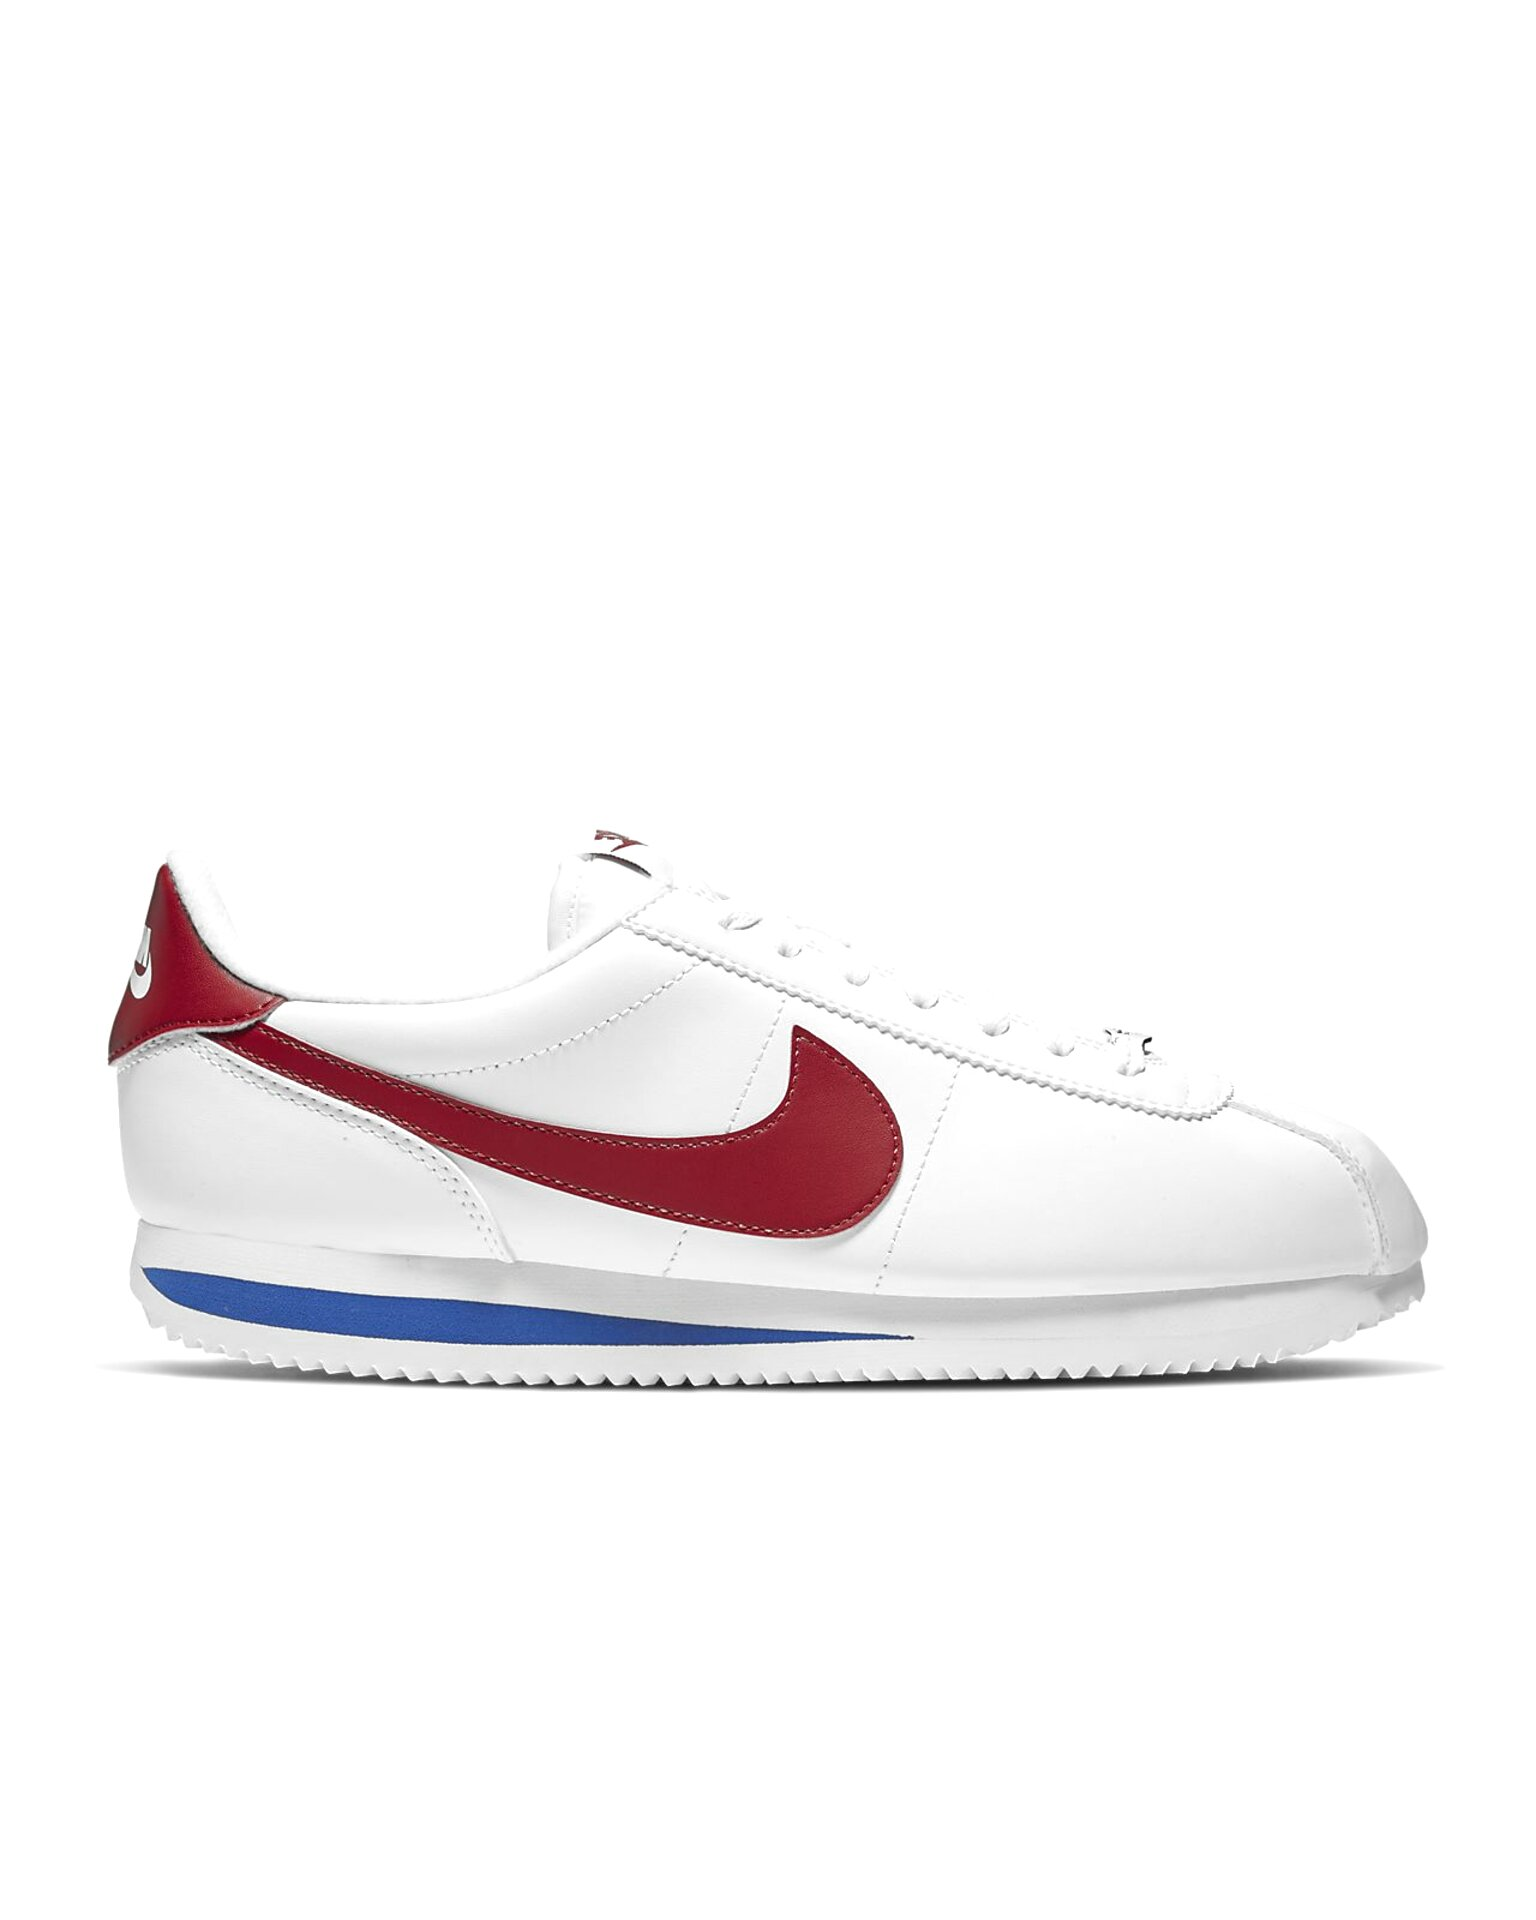 Nike Cortez for sale in UK | 69 second